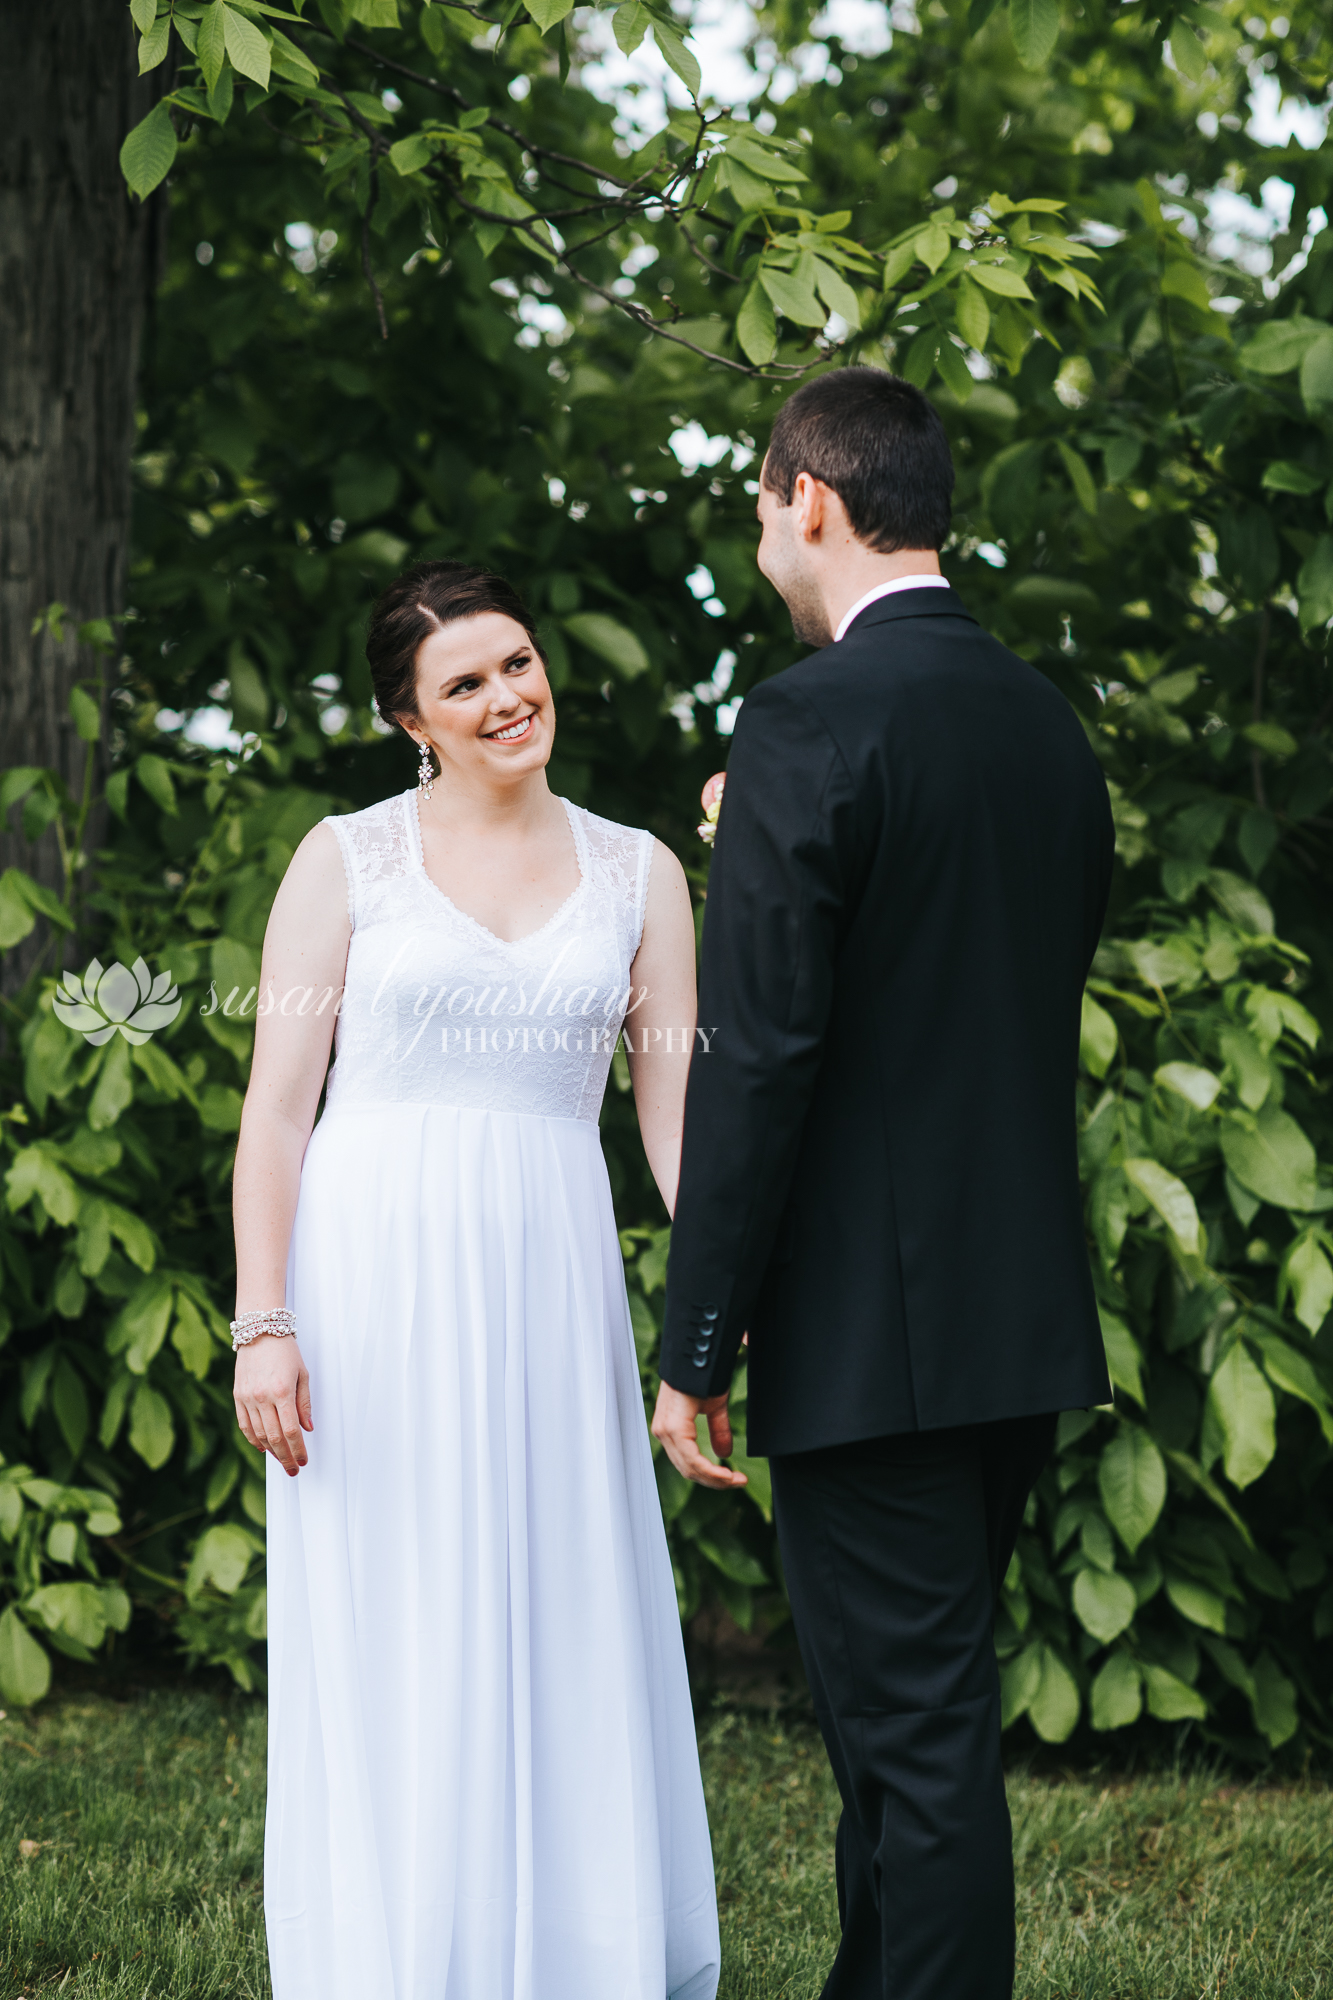 Adena and  Erik Wedding 05-17-2019 SLY Photography-22.jpg